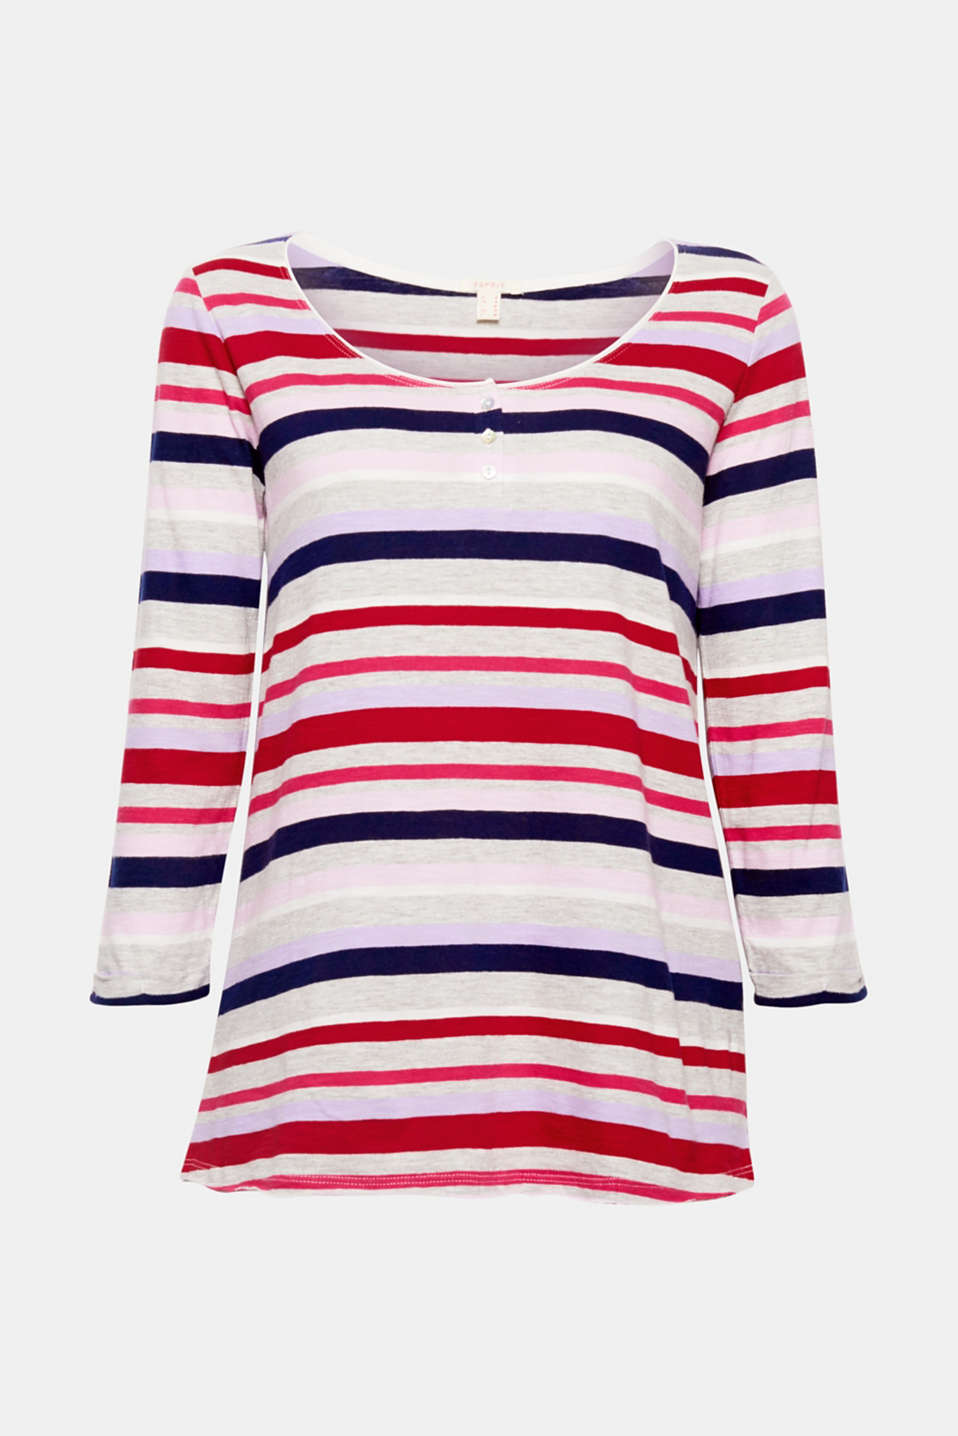 This colourfully striped top with a small button placket and three-quarter length sleeves is super soft and incredibly comfortable!